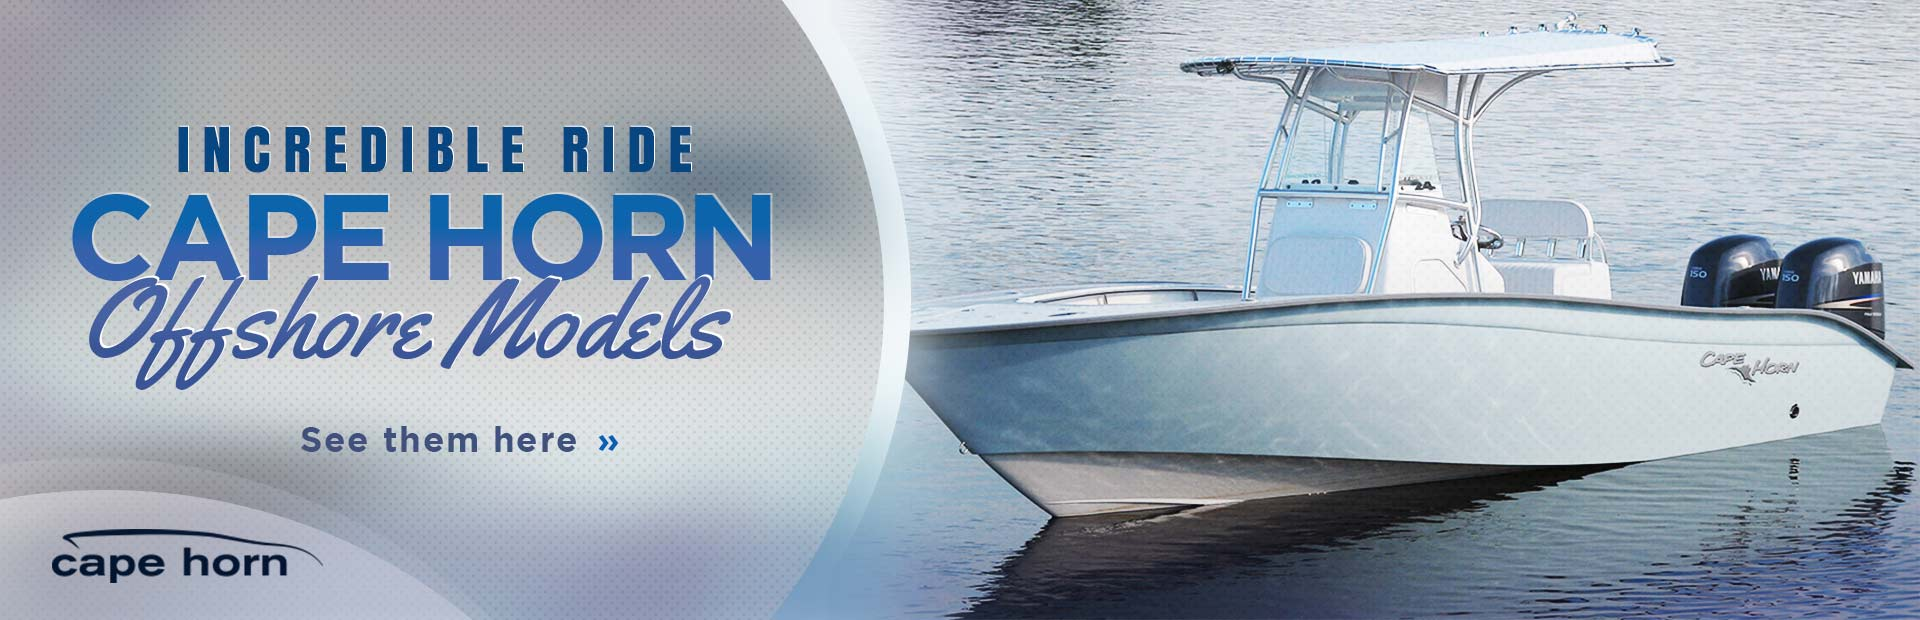 Cape Horn Offshore Boats: Click here to view the models.